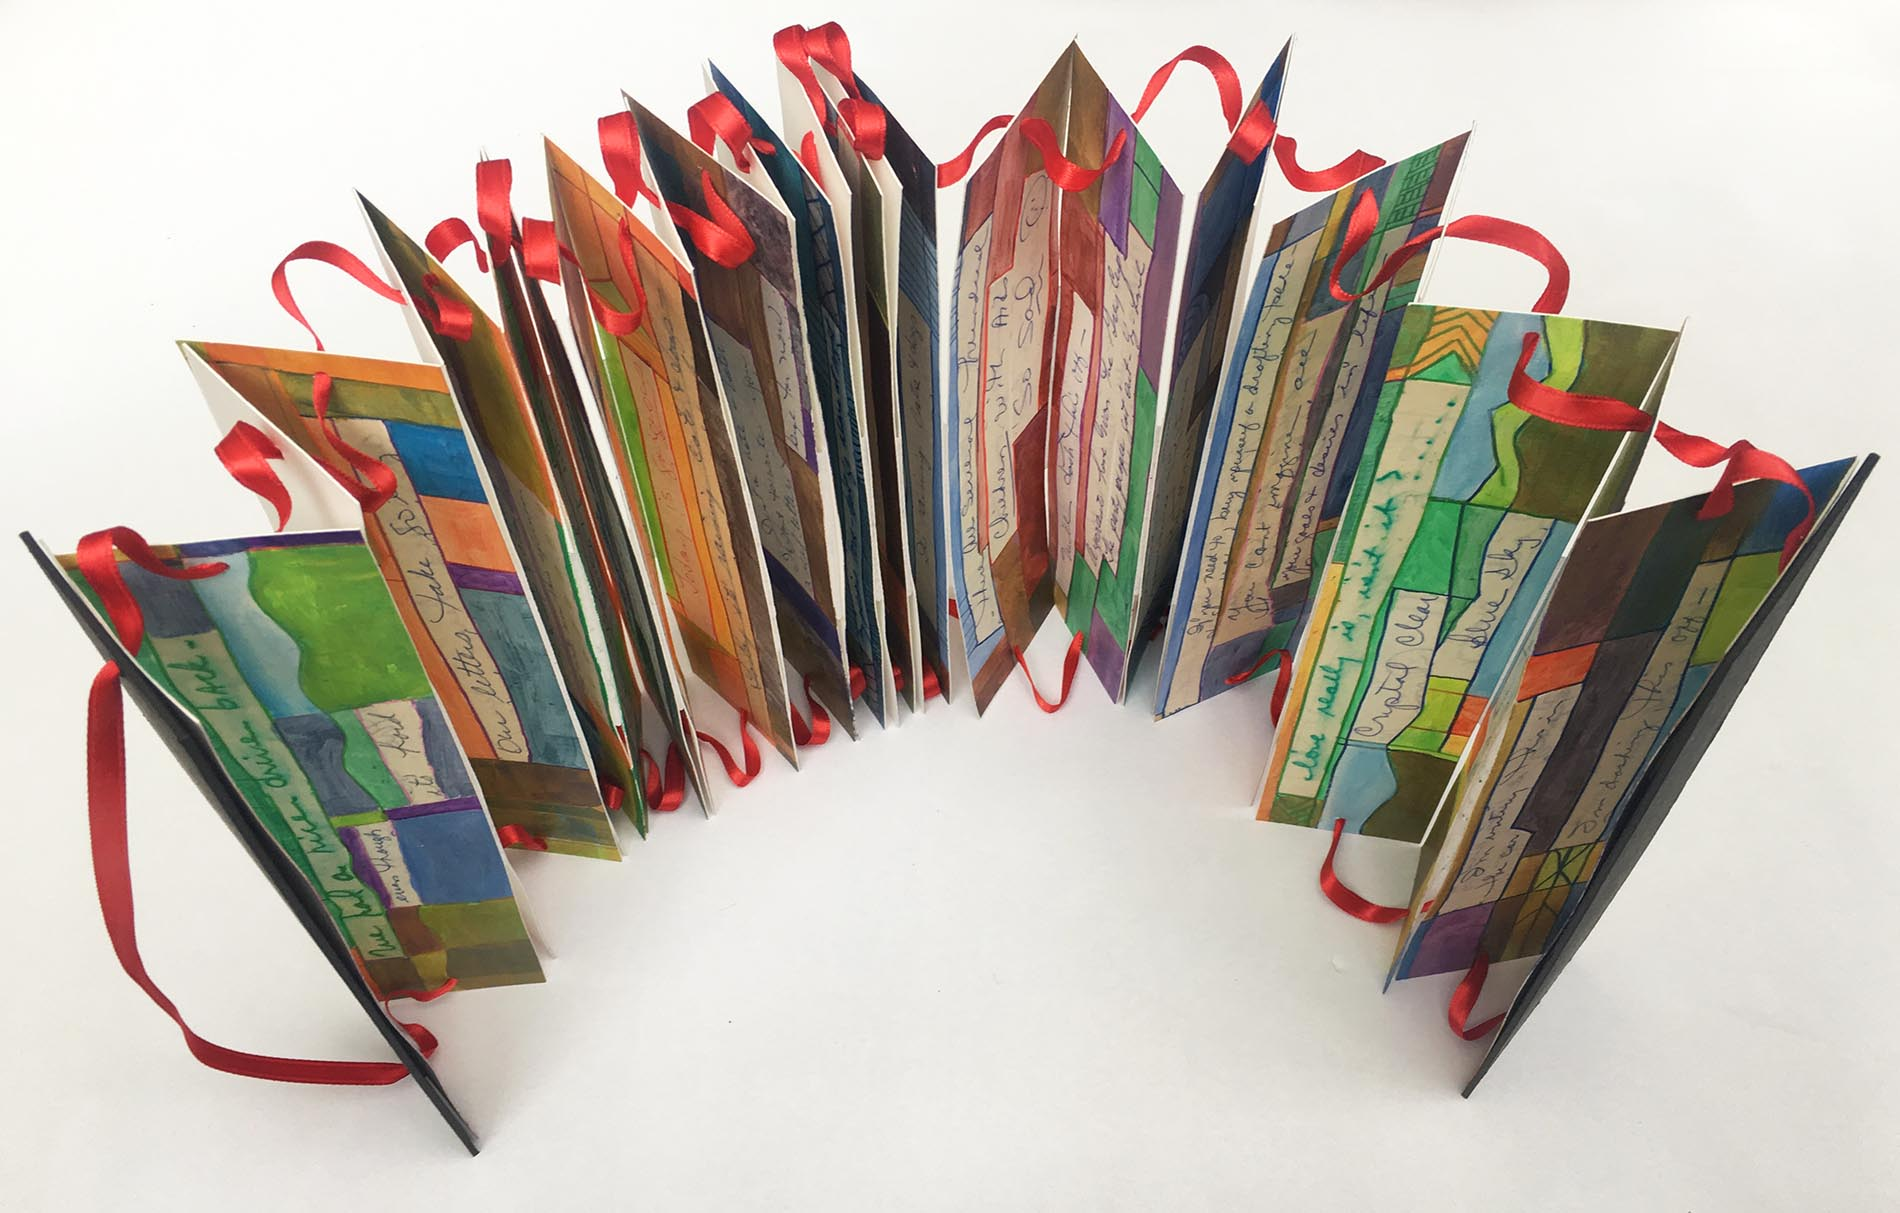 book art by Karen Viola